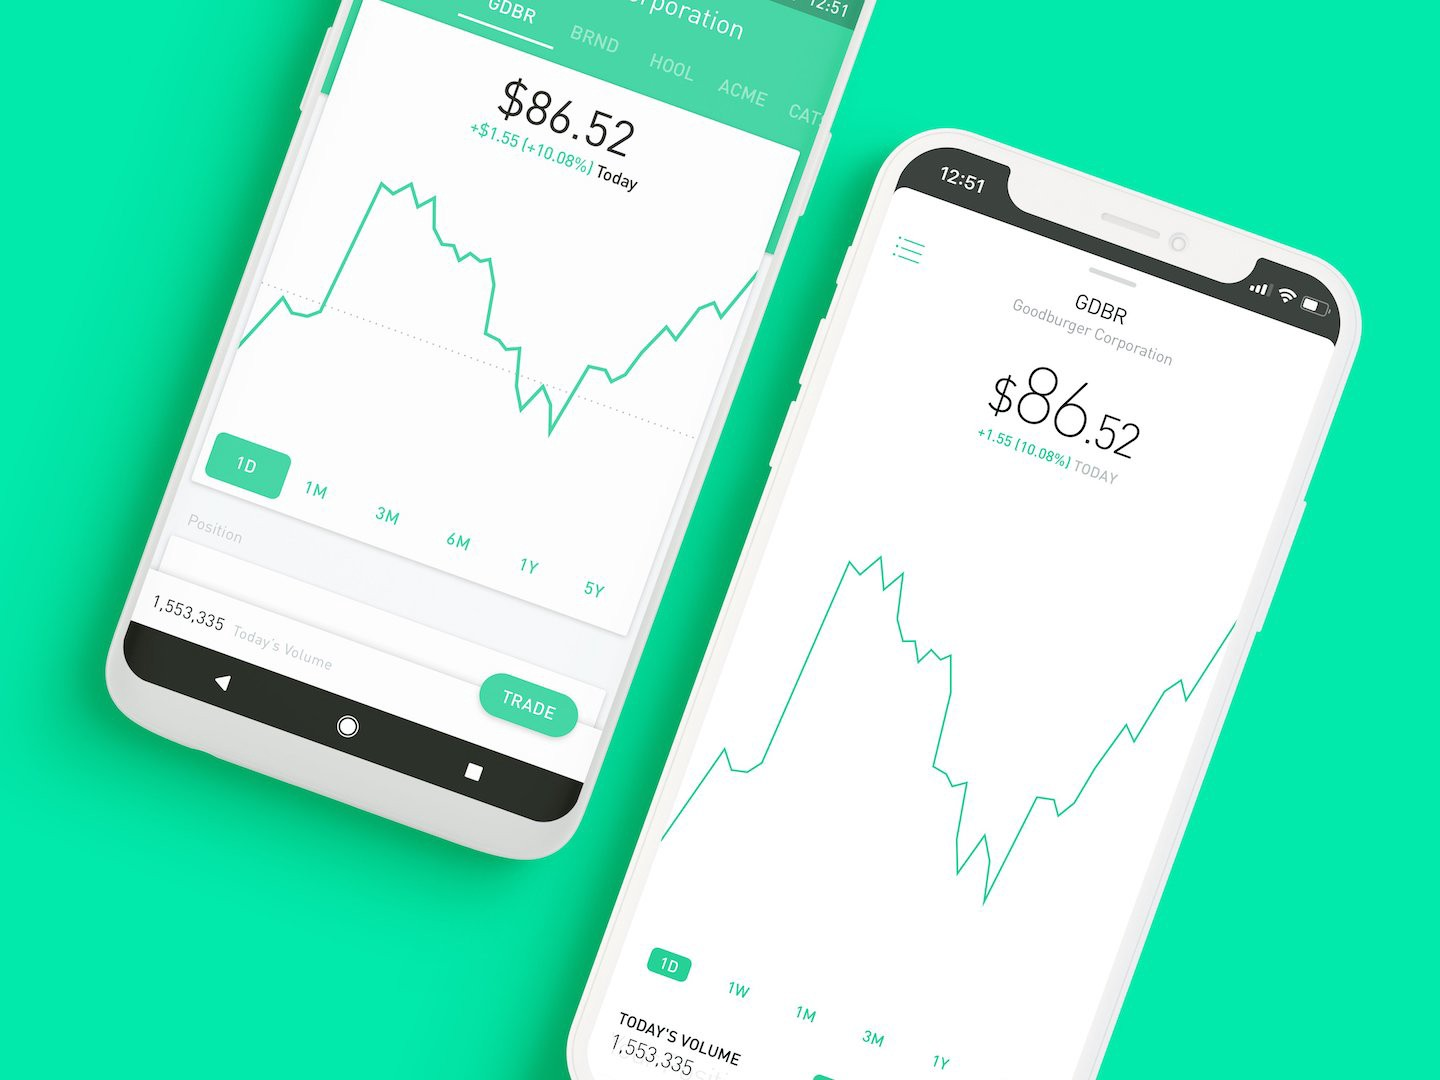 Robinhood Terminology